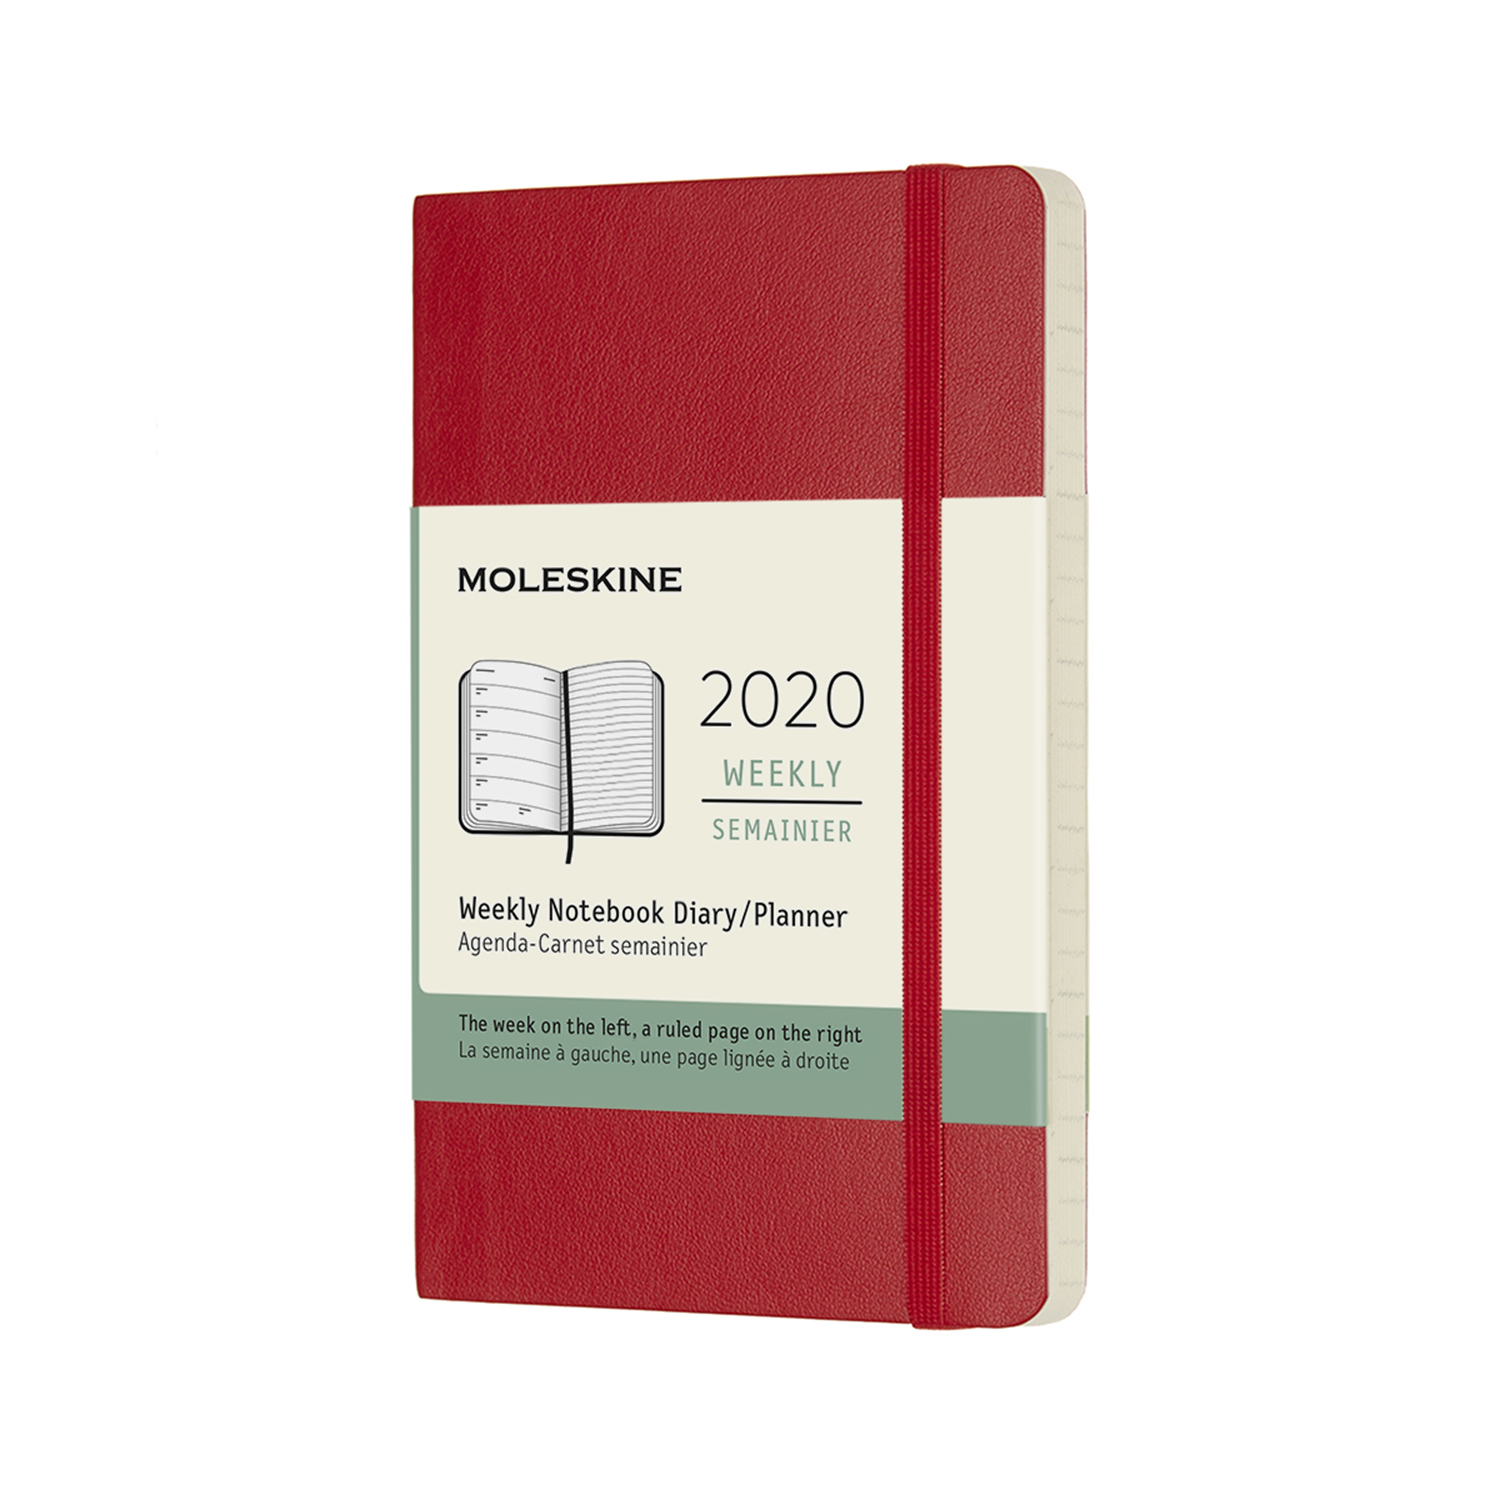 SCARLET RED WEEKLY POCKET SOFTCOVER 2020 DIARY